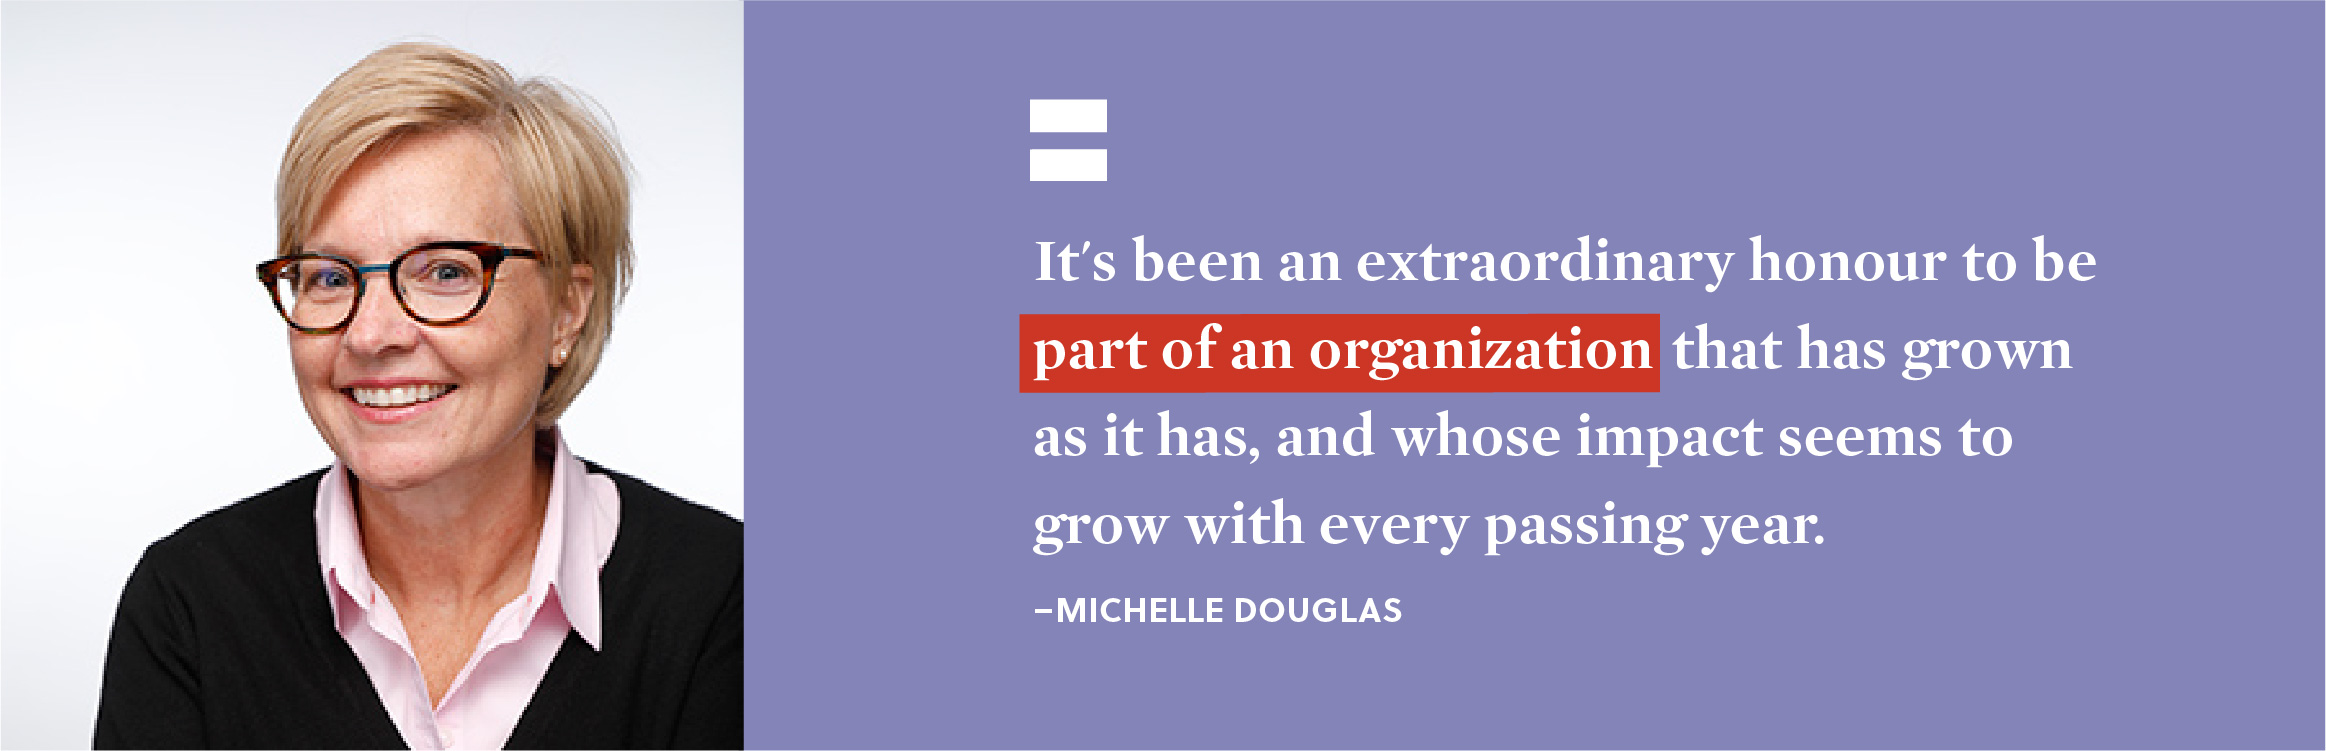 """It's been an extraordinary honour to be part of an organization that has grown as it has, and whose impact seems to grow with every passing year."" - Michelle Dougals."